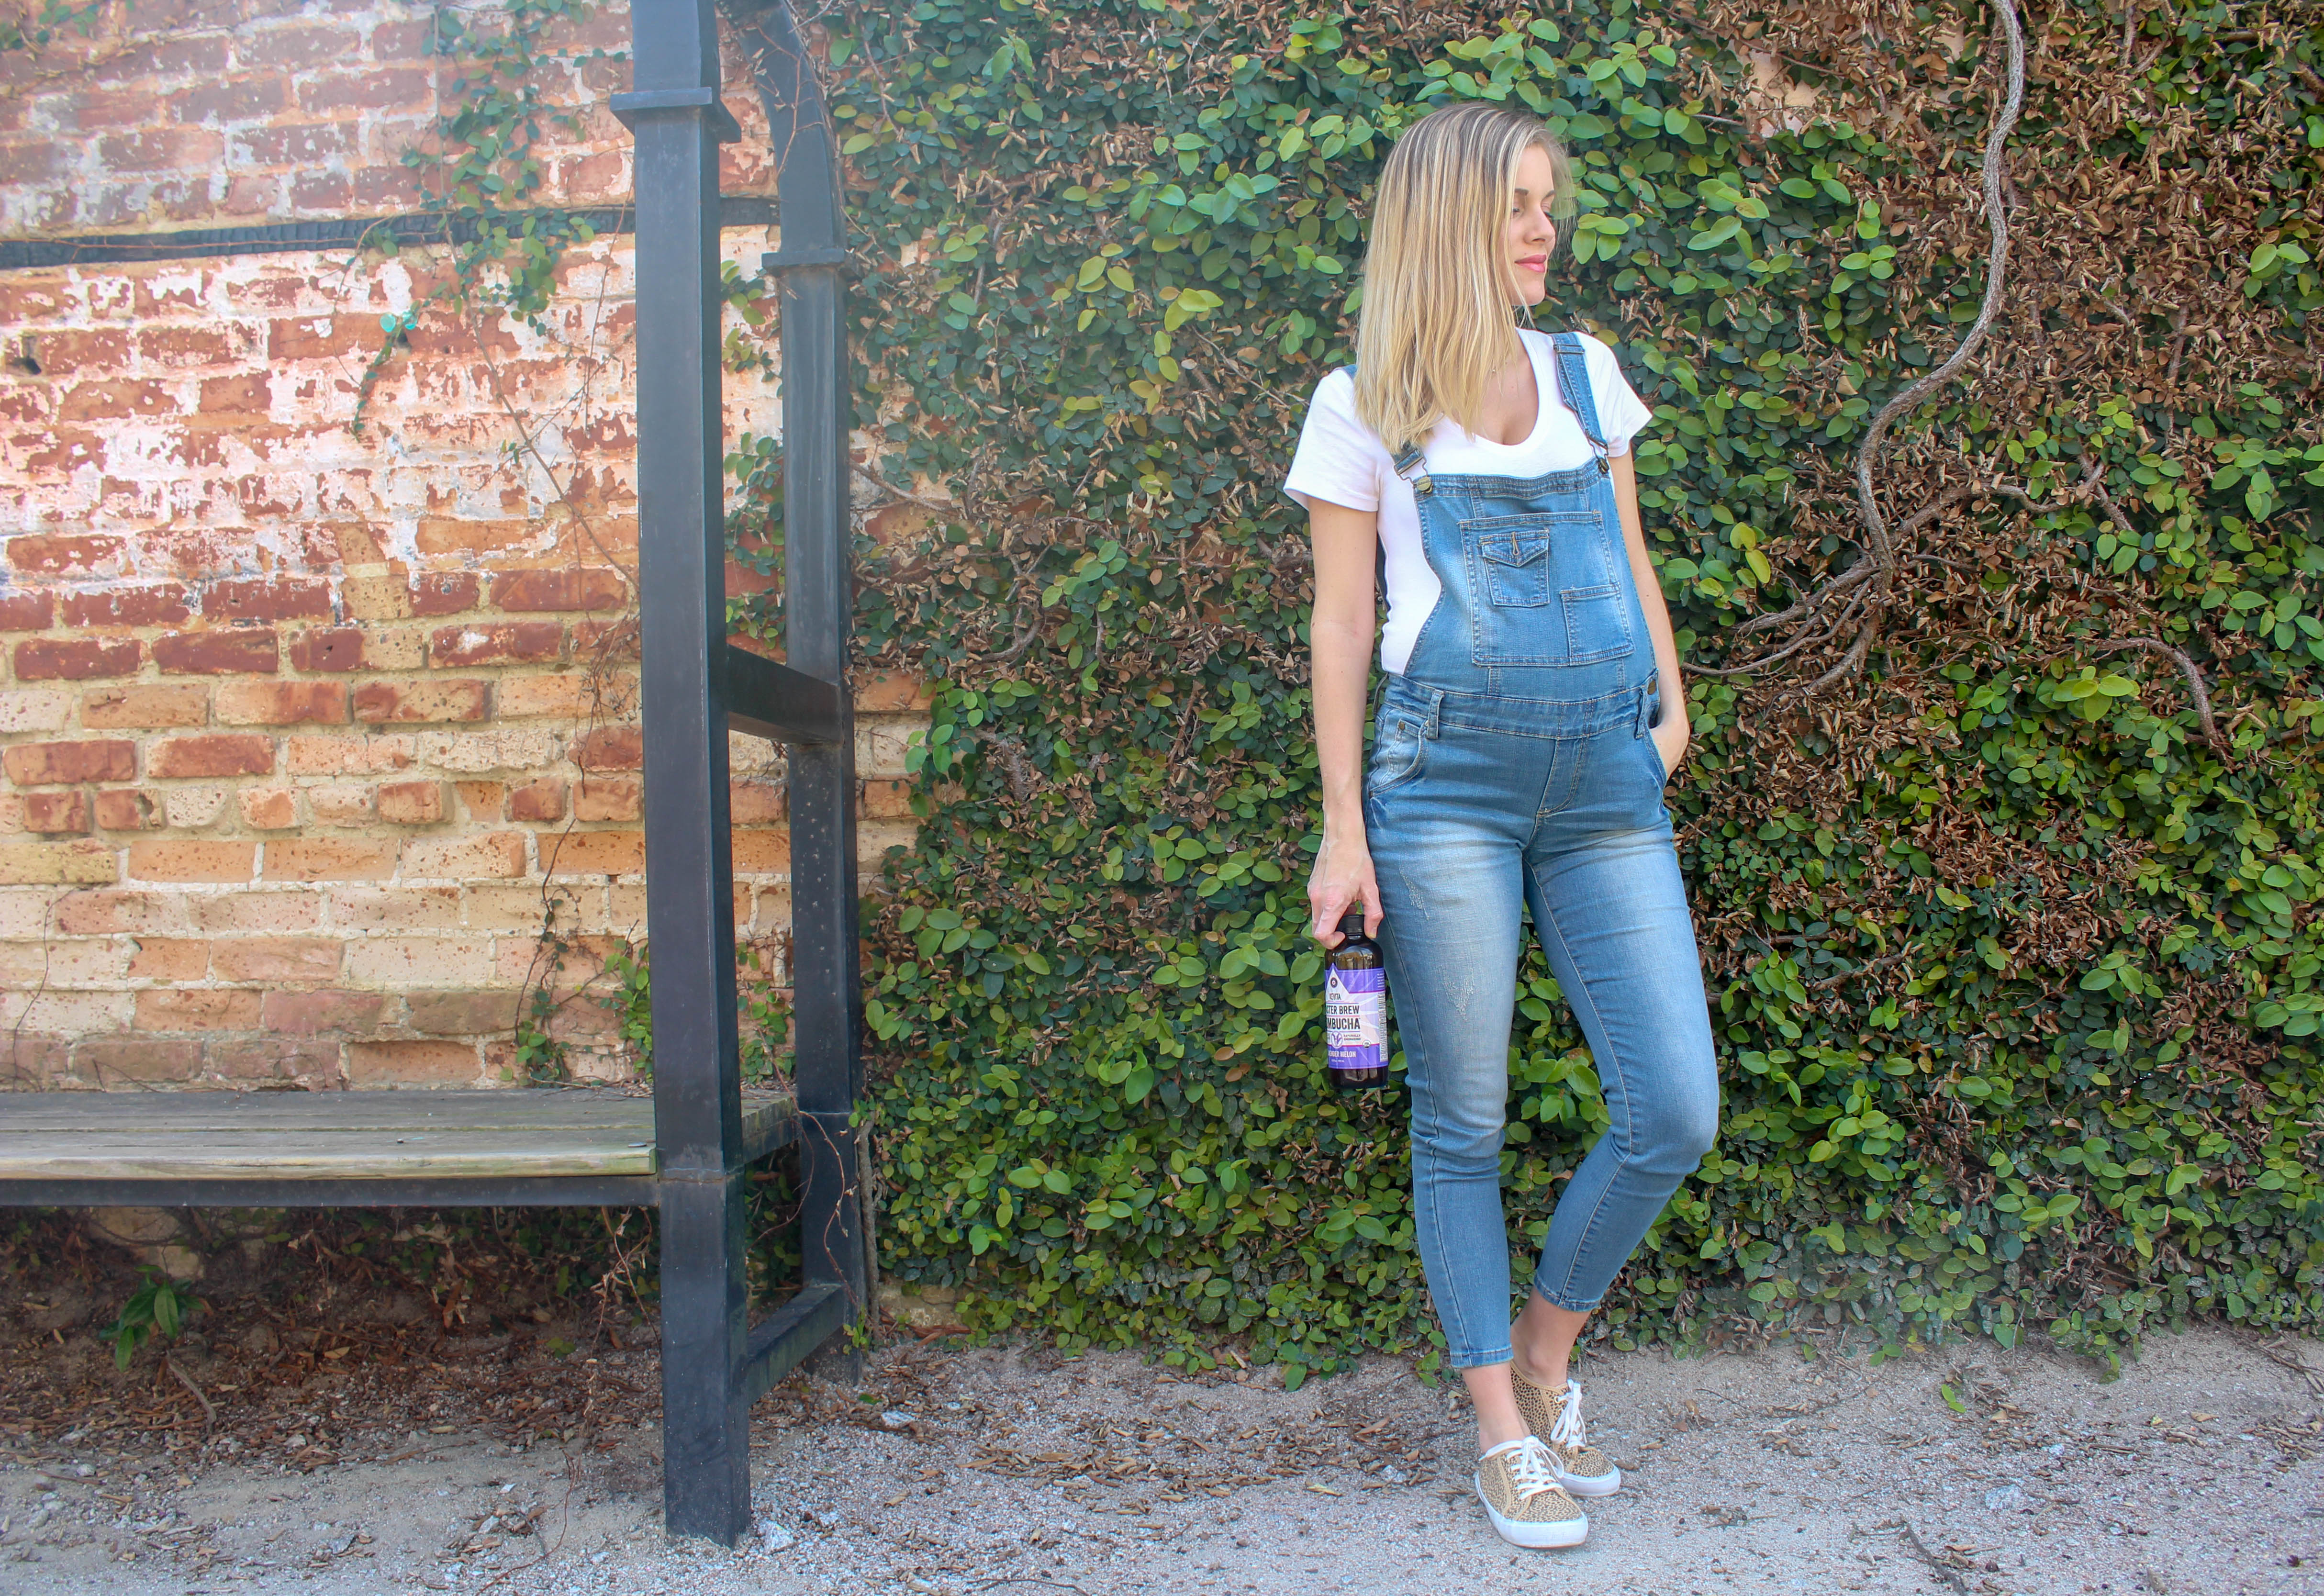 Kombucha and Overalls to the Rescue